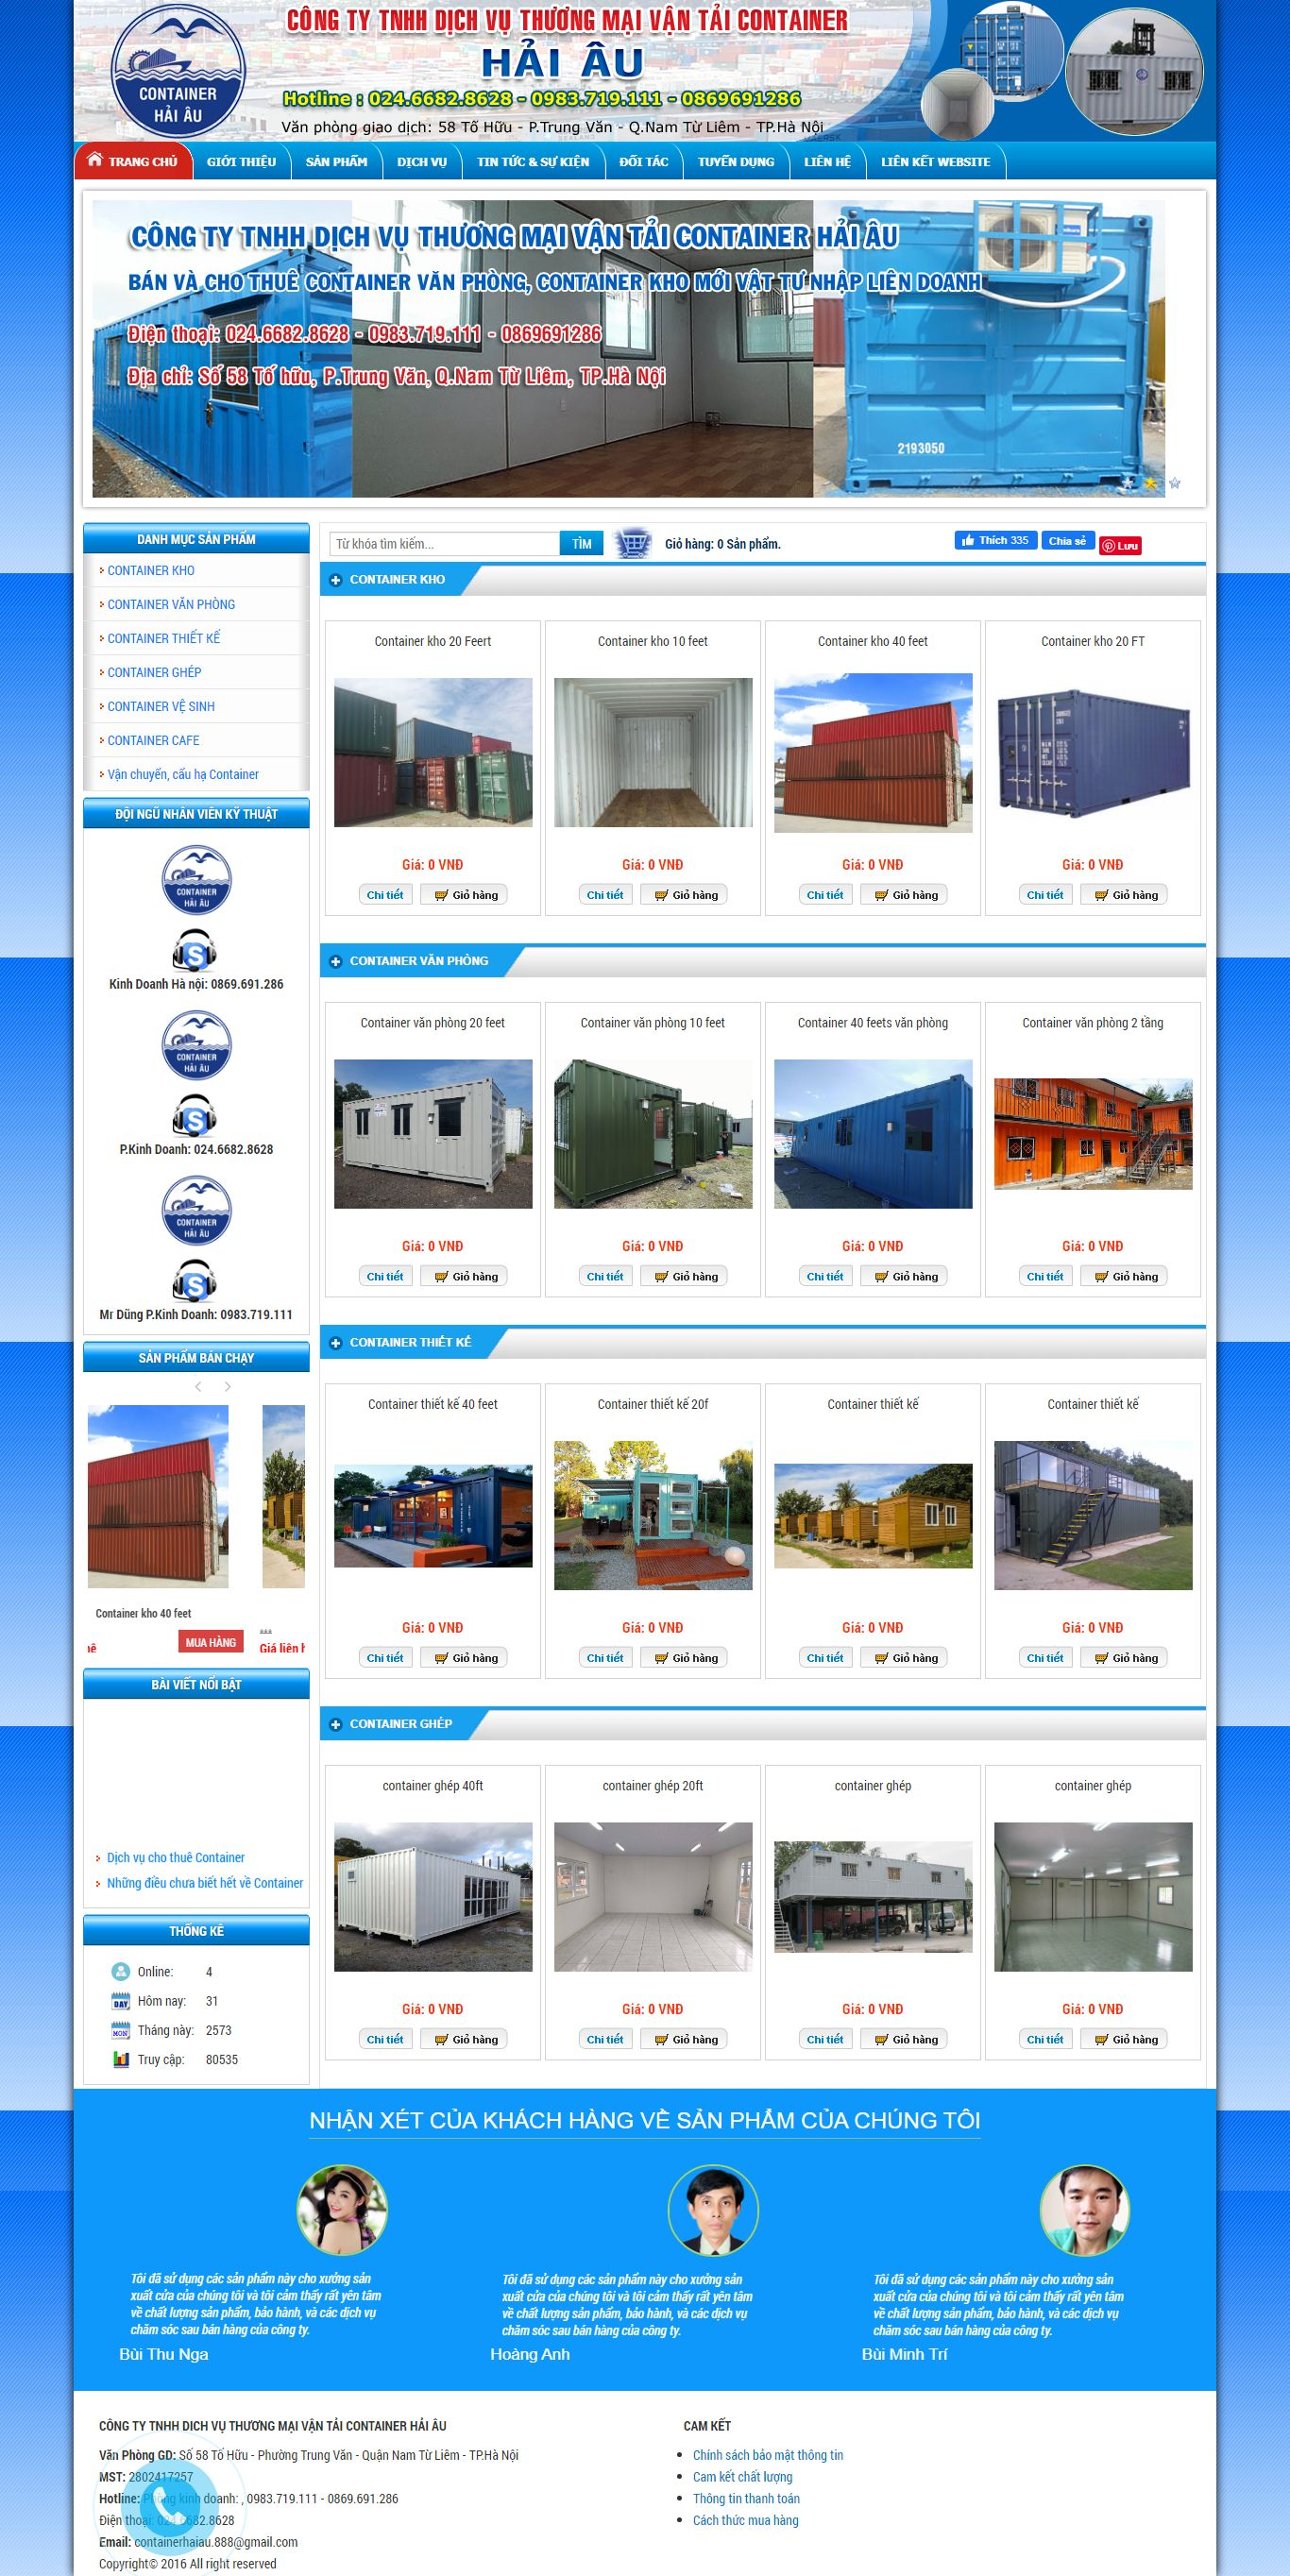 Thiết kế Website container - containerhaiau.com